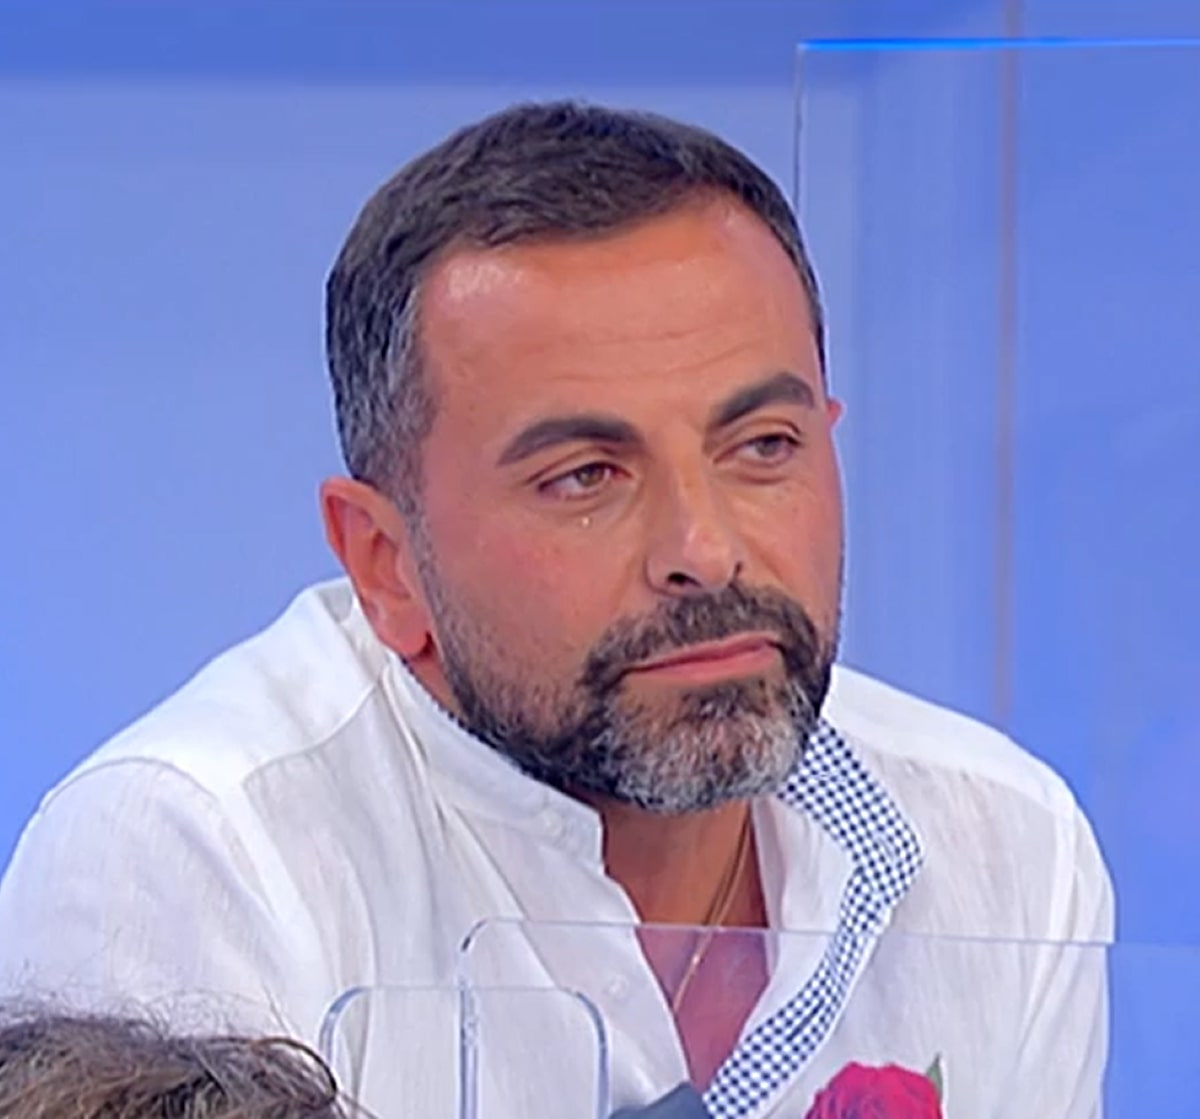 marcello ued